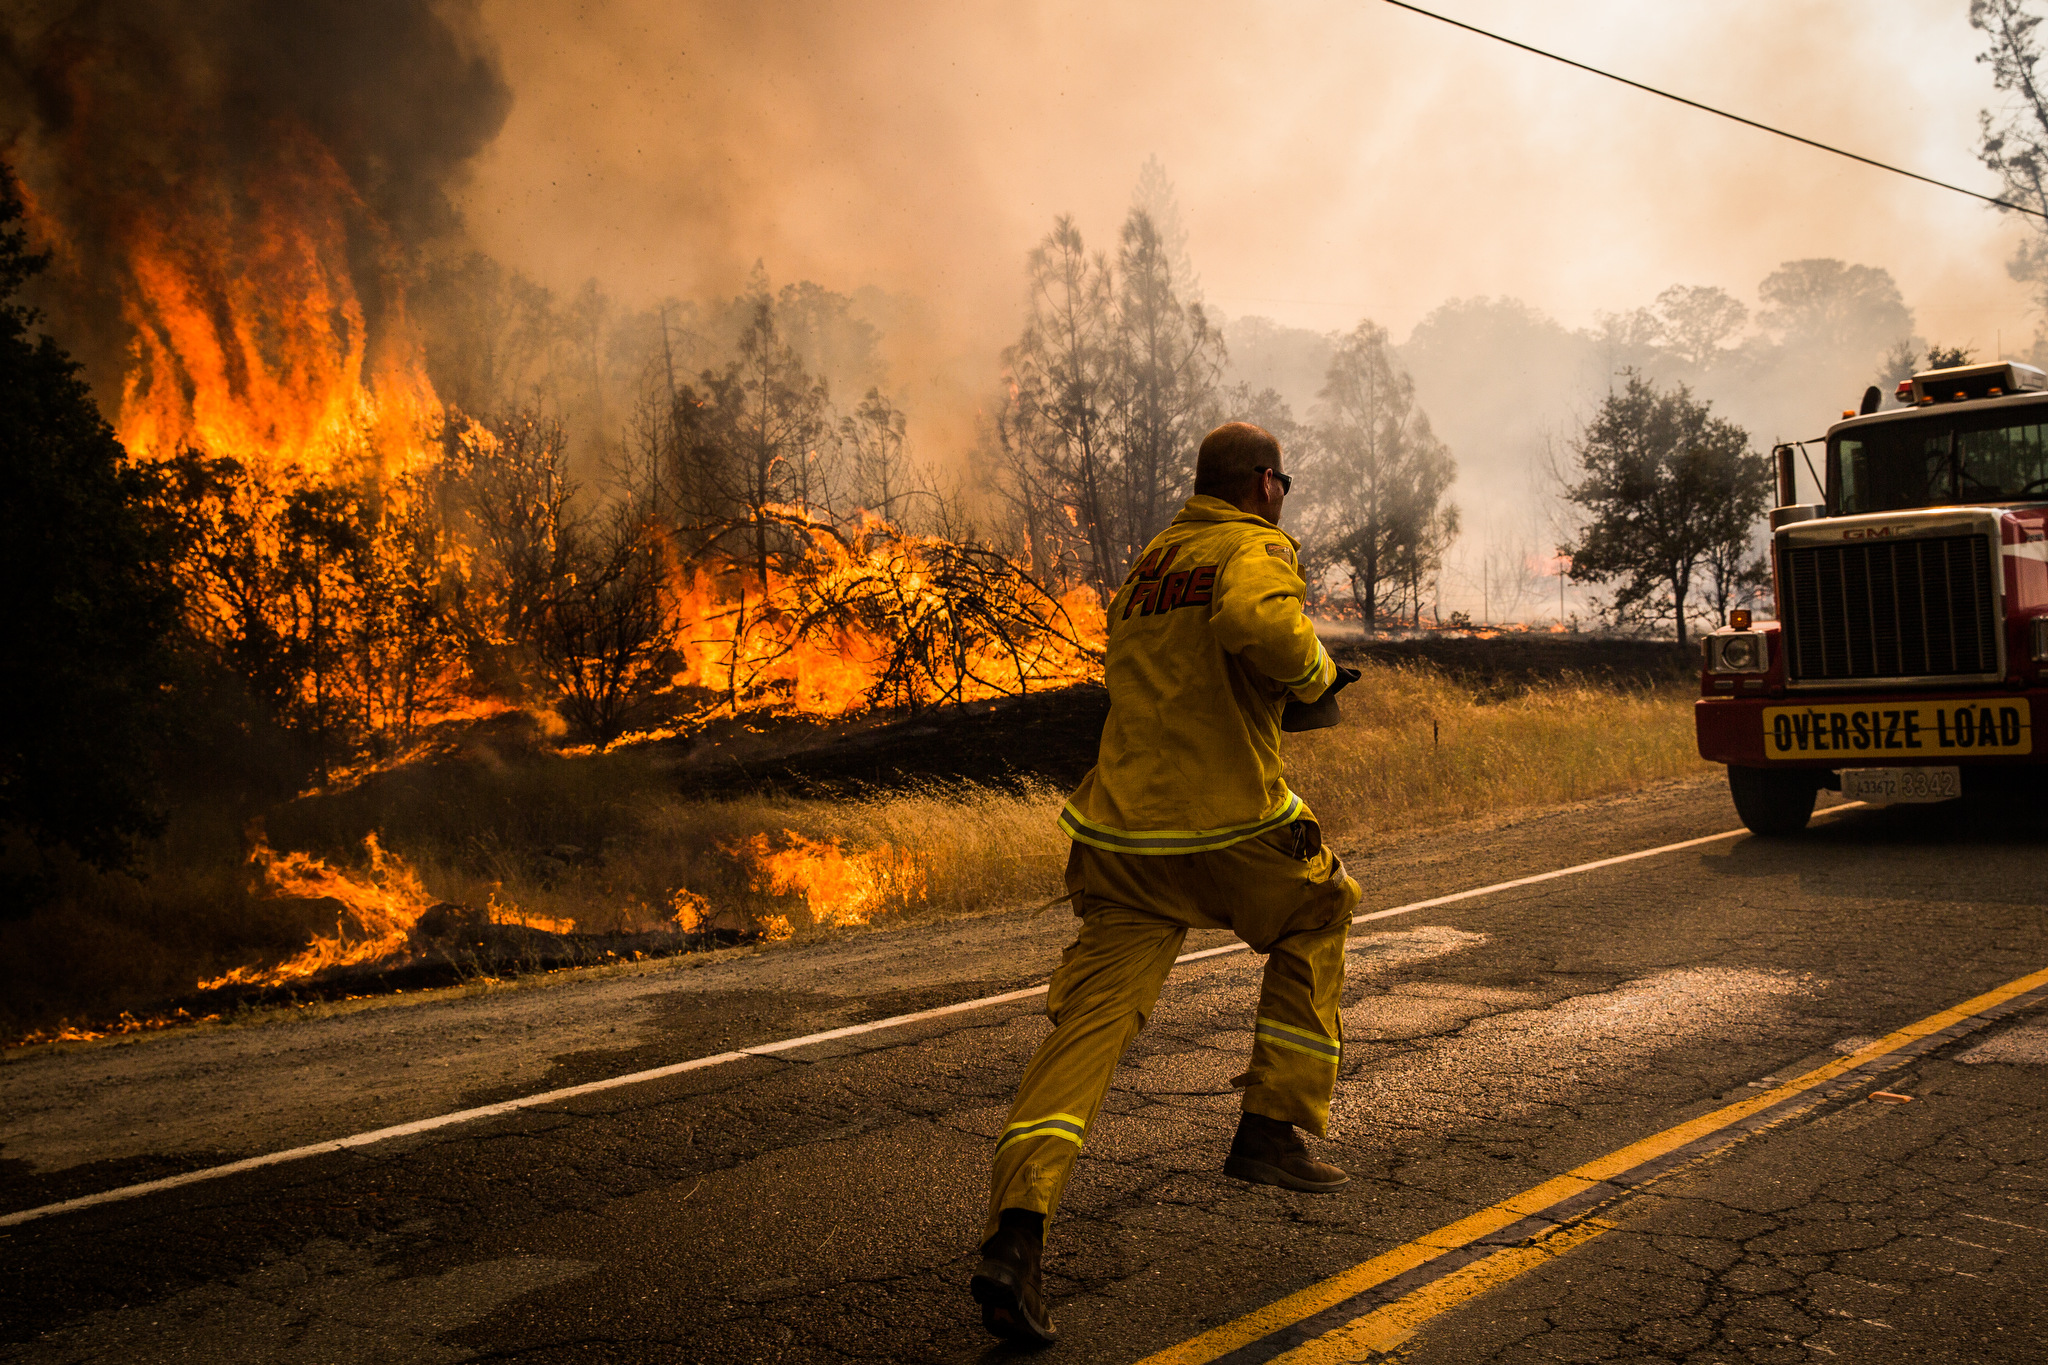 A firefighter runs to move a truck before it's overrun by a spot fire on the Rocky Fire in Lake County, California on July 30, 2015. As of August 5, the fire had consumed 69,600 acres and is one of 23 wildfires burning in California.